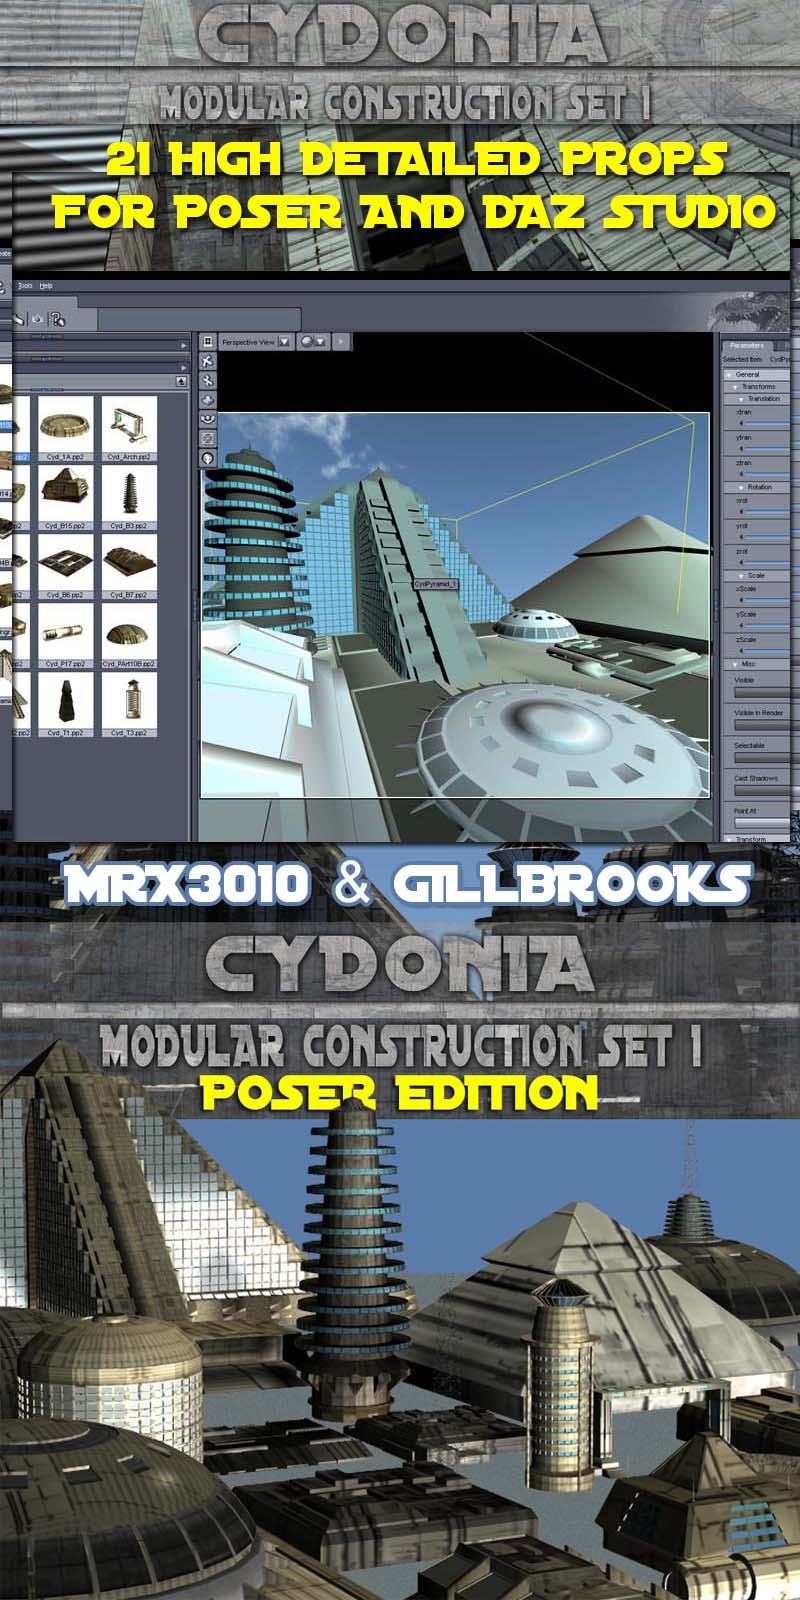 Cydonia Modular Construction Set 1 (Poser and Daz)